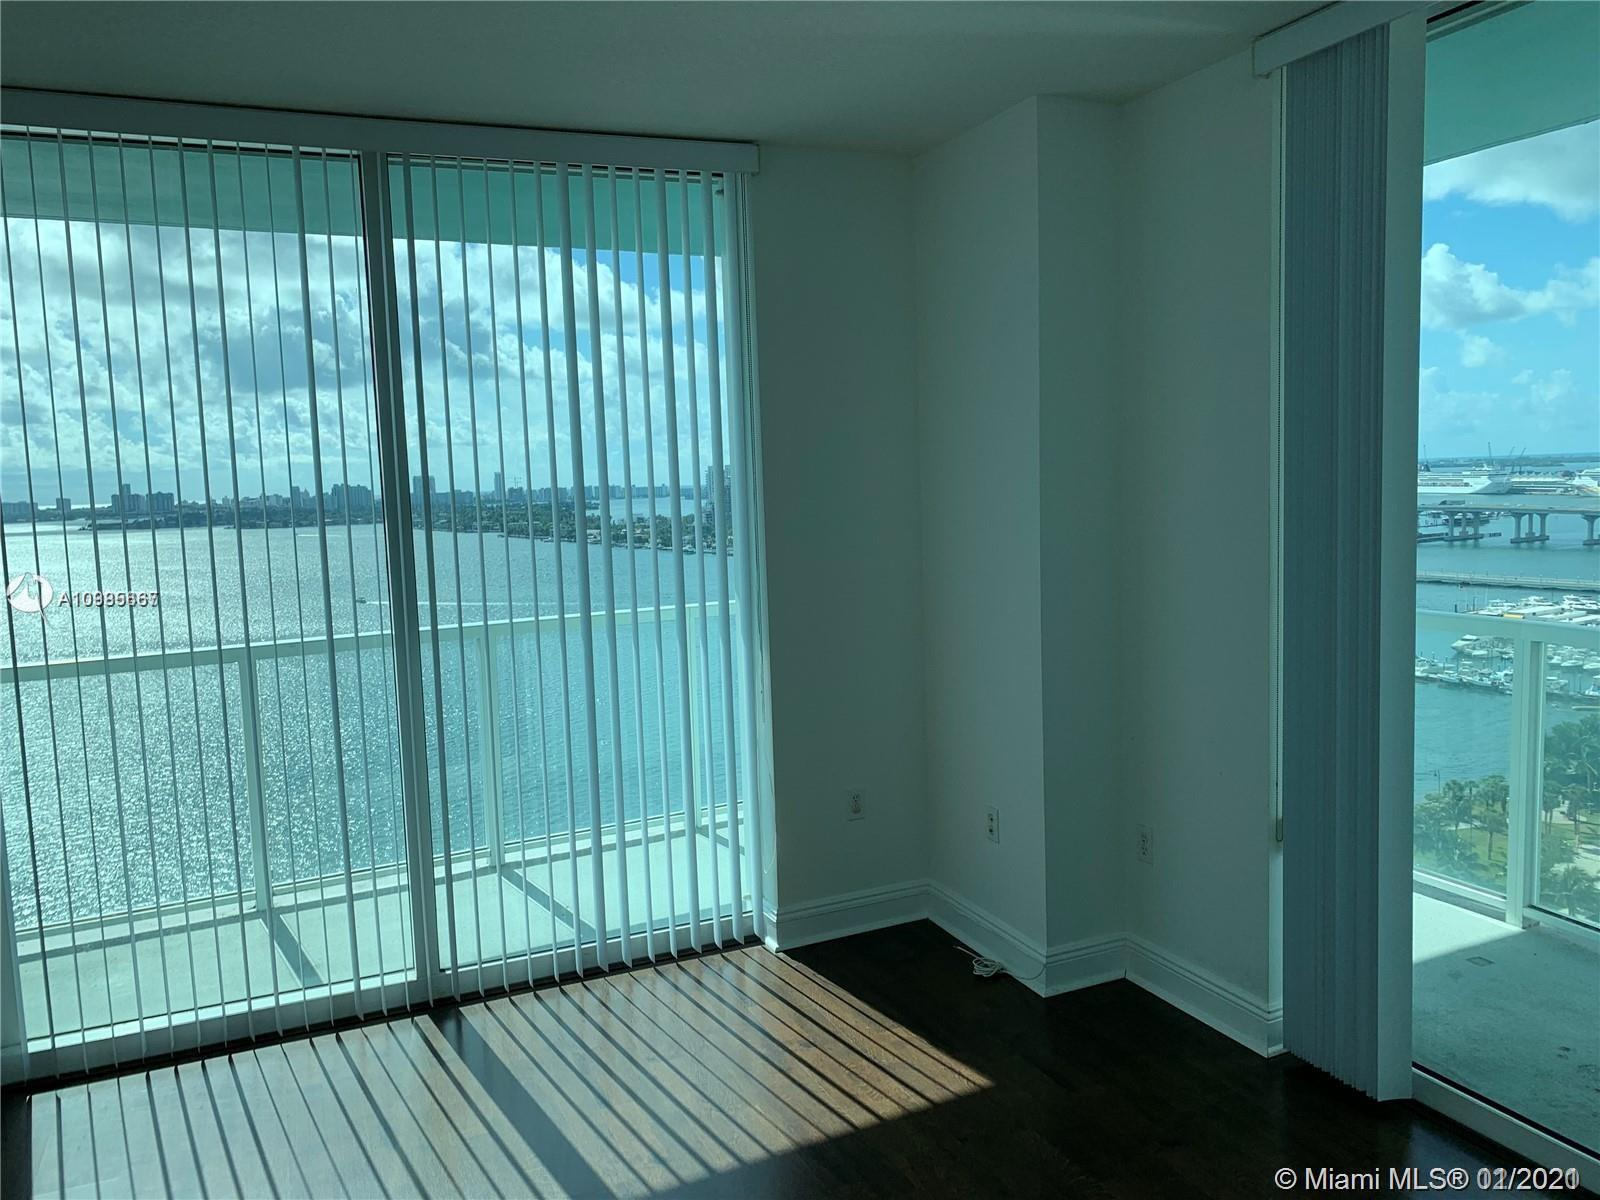 Spectacular bay view, new unit with 2 bedrooms, 2.5 baths, features wrap around terrace.  Beautiful